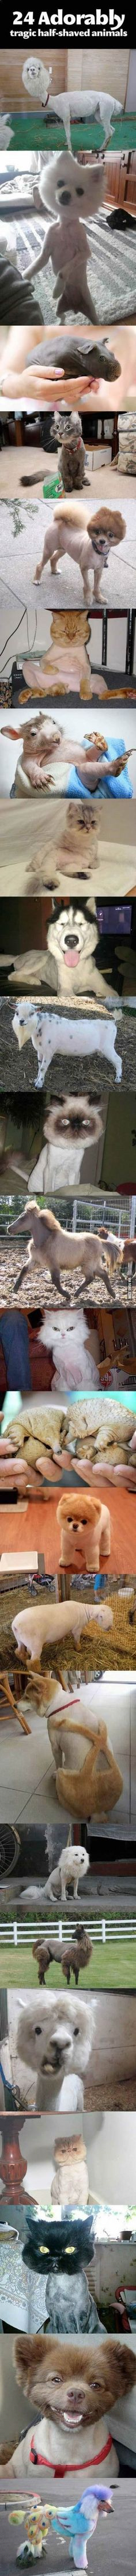 Funny half shaved animals @Shannon McCormic because you understand my ridiculous sense of humor